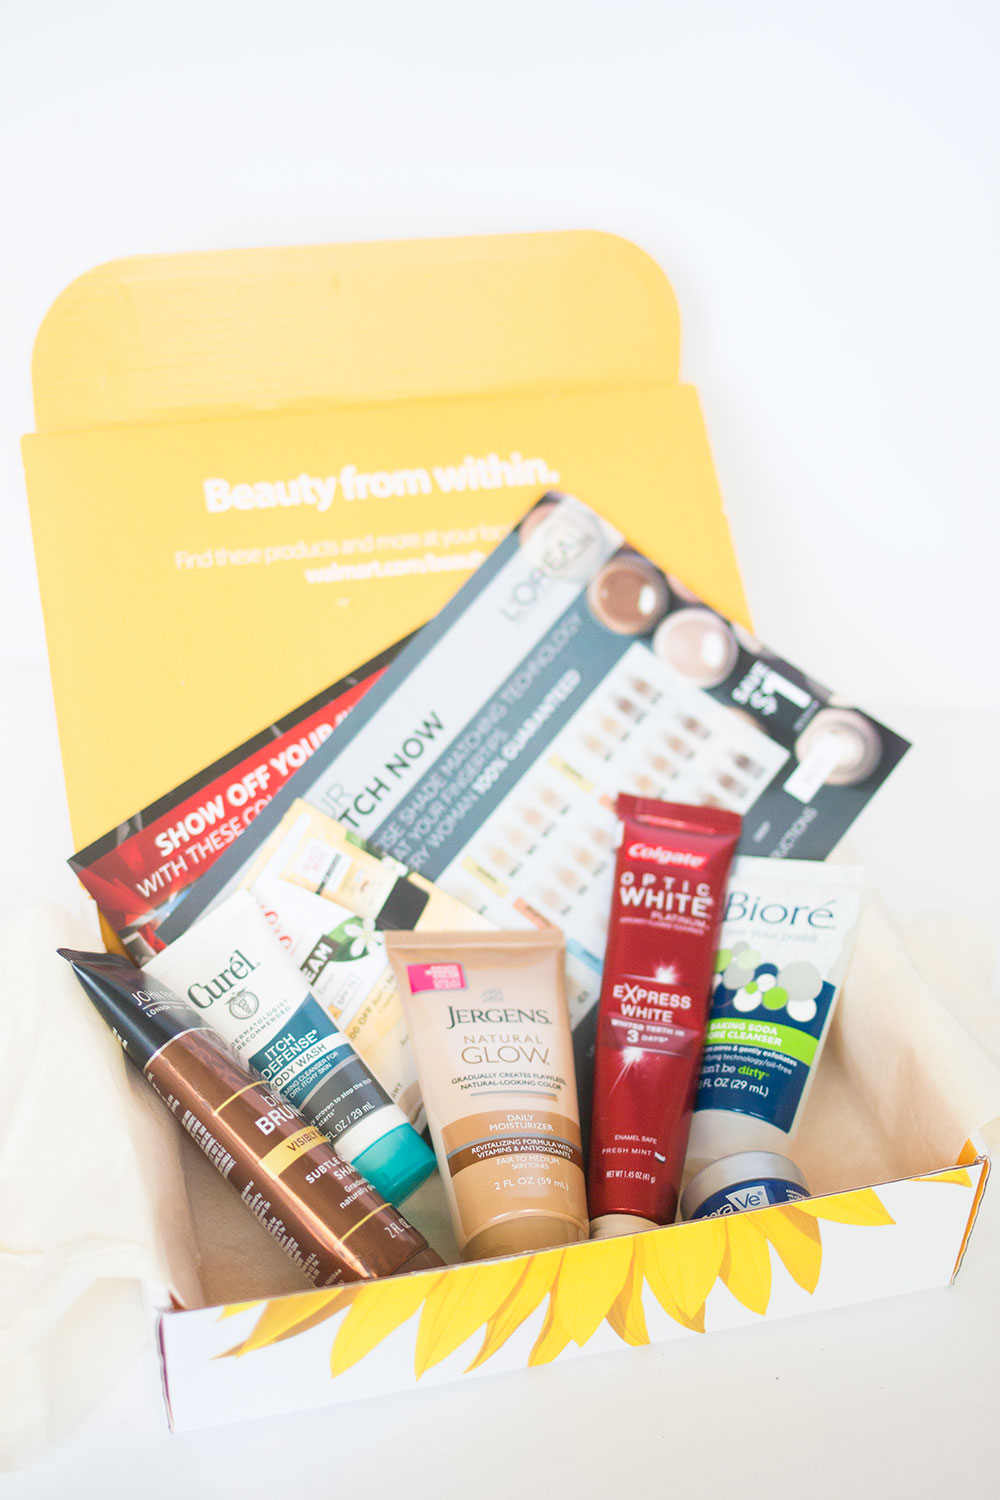 Walmart Spring 2016 Beauty Box Unboxing and Review // Hello Rigby Seattle Beauty Blog